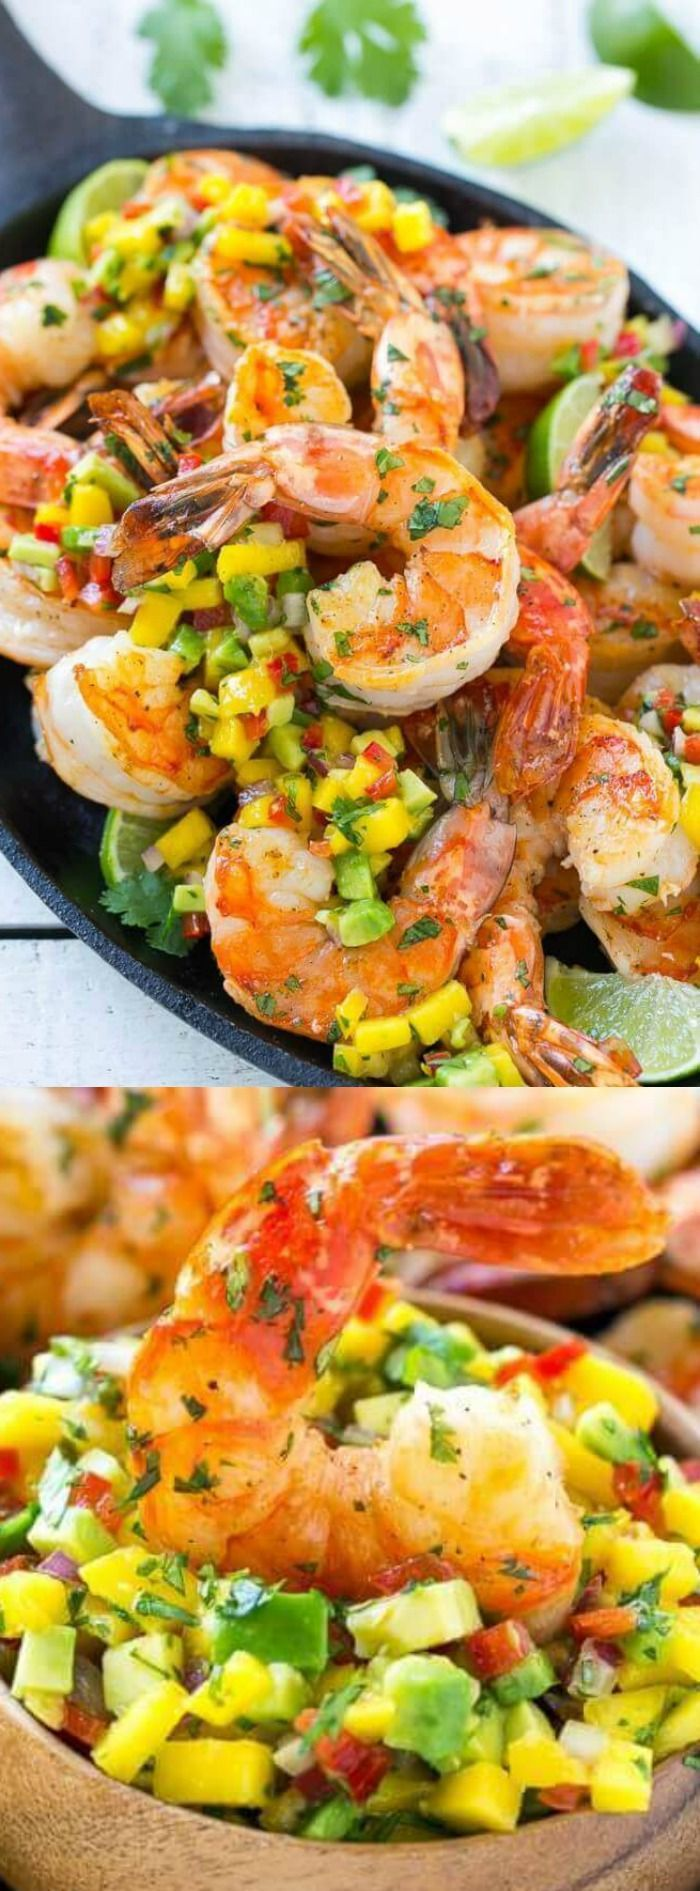 This Cilantro Lime Shrimp with Mango Avocado Salsa from Dinner at the Zoo is a quick dinner (or appetizer) that is full of awesome flavor and color! The best part is that it's ready in just 20 minutes making it the perfect weeknight meal!